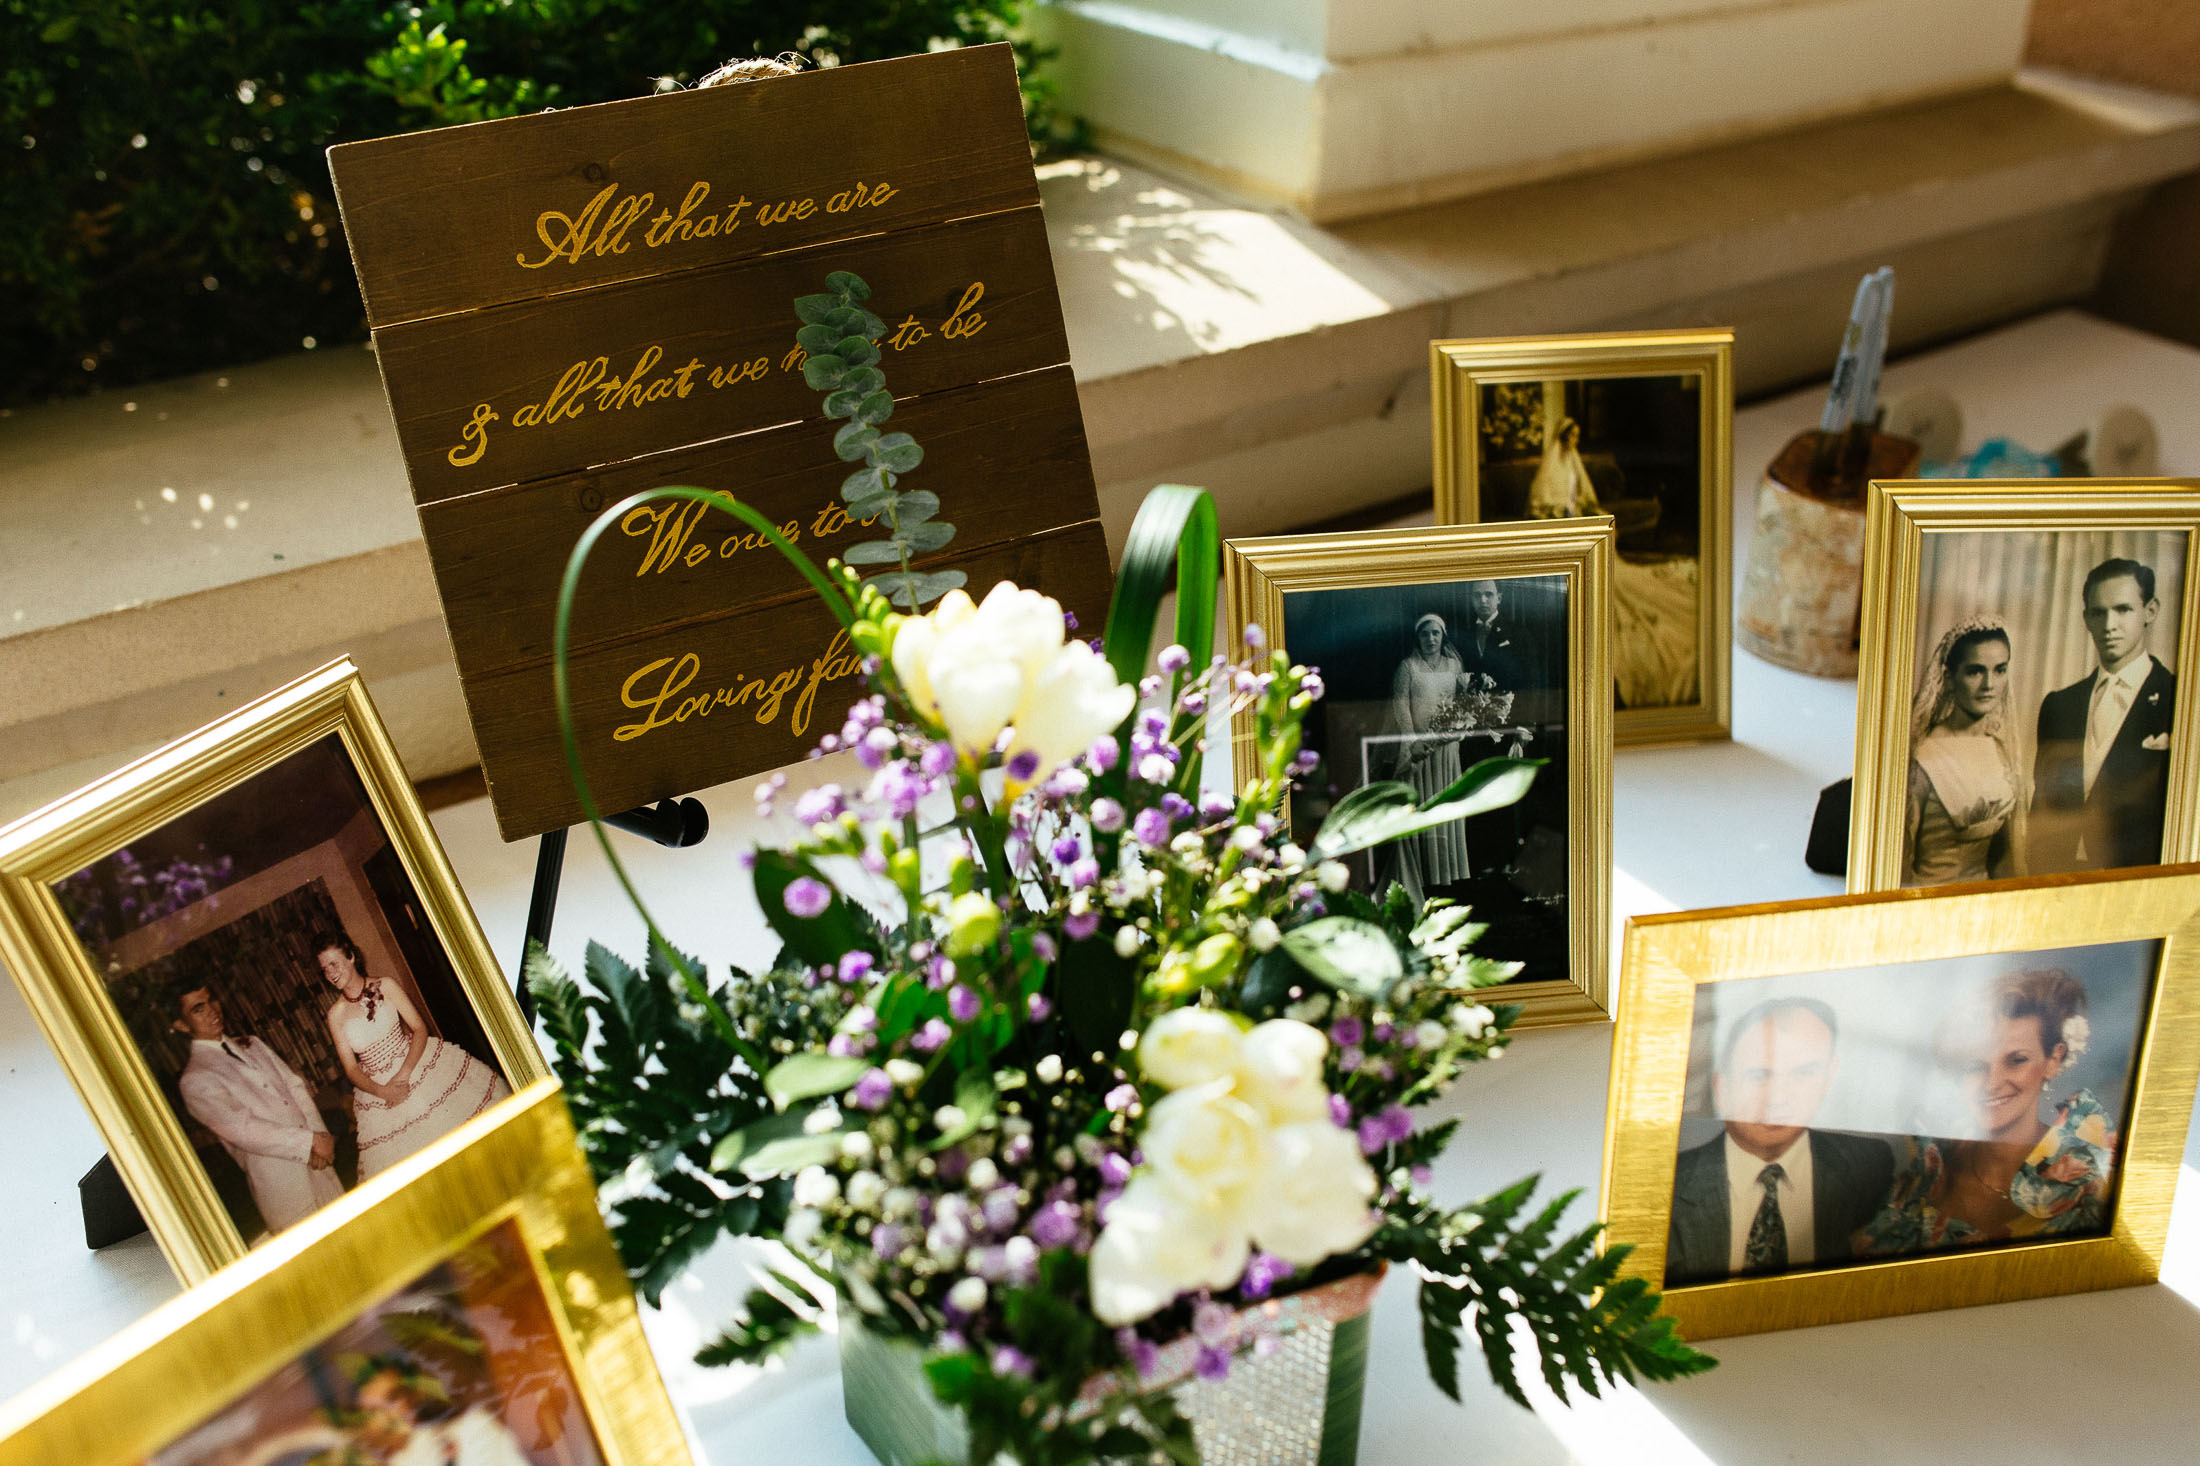 Flowers and wedding photos on display at The Broadmoor.